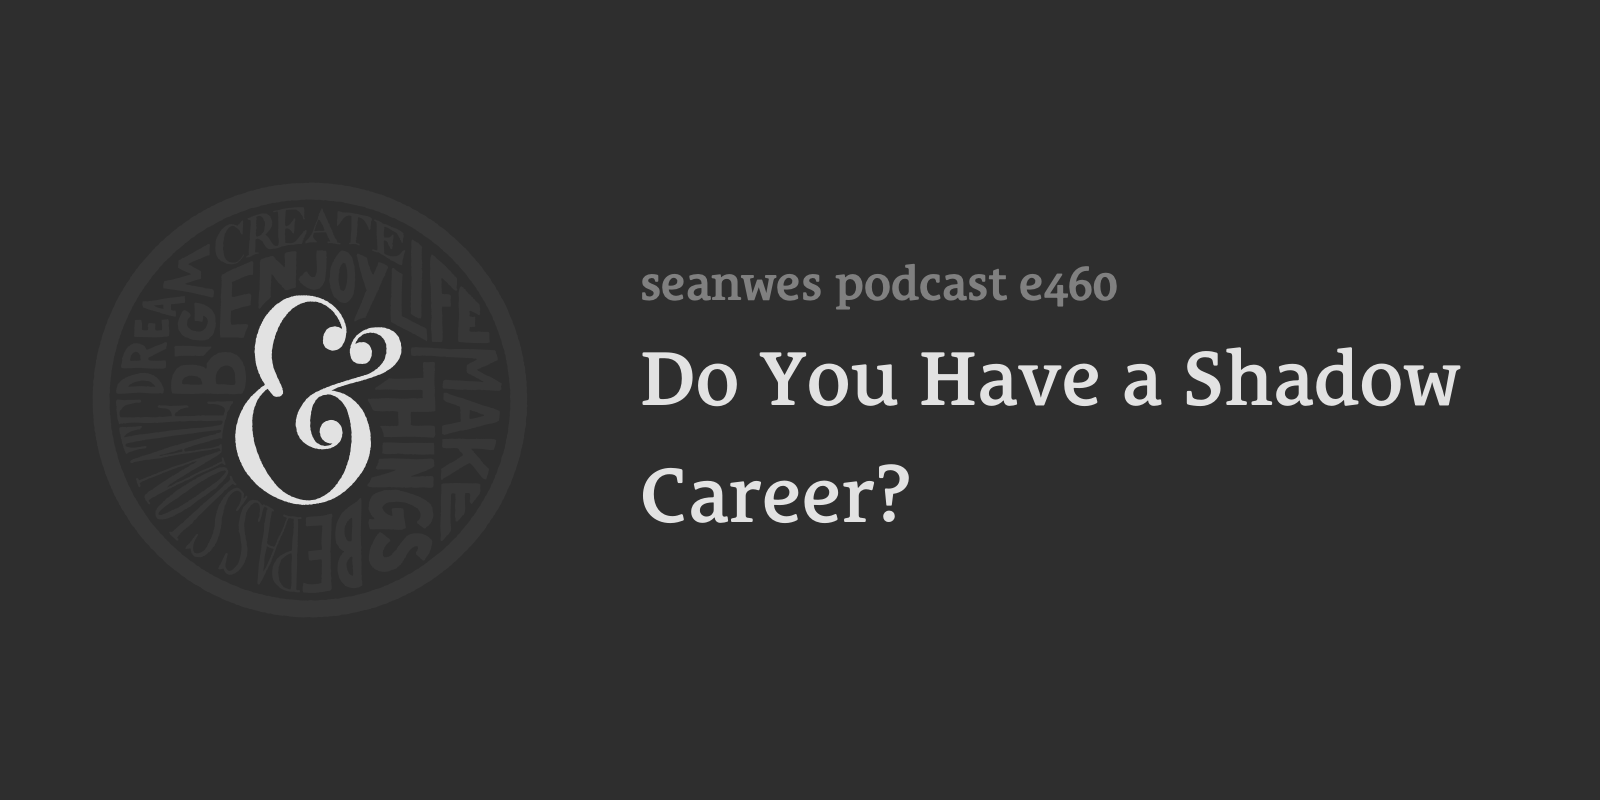 seanwes podcast: Do You Have a Shadow Career?